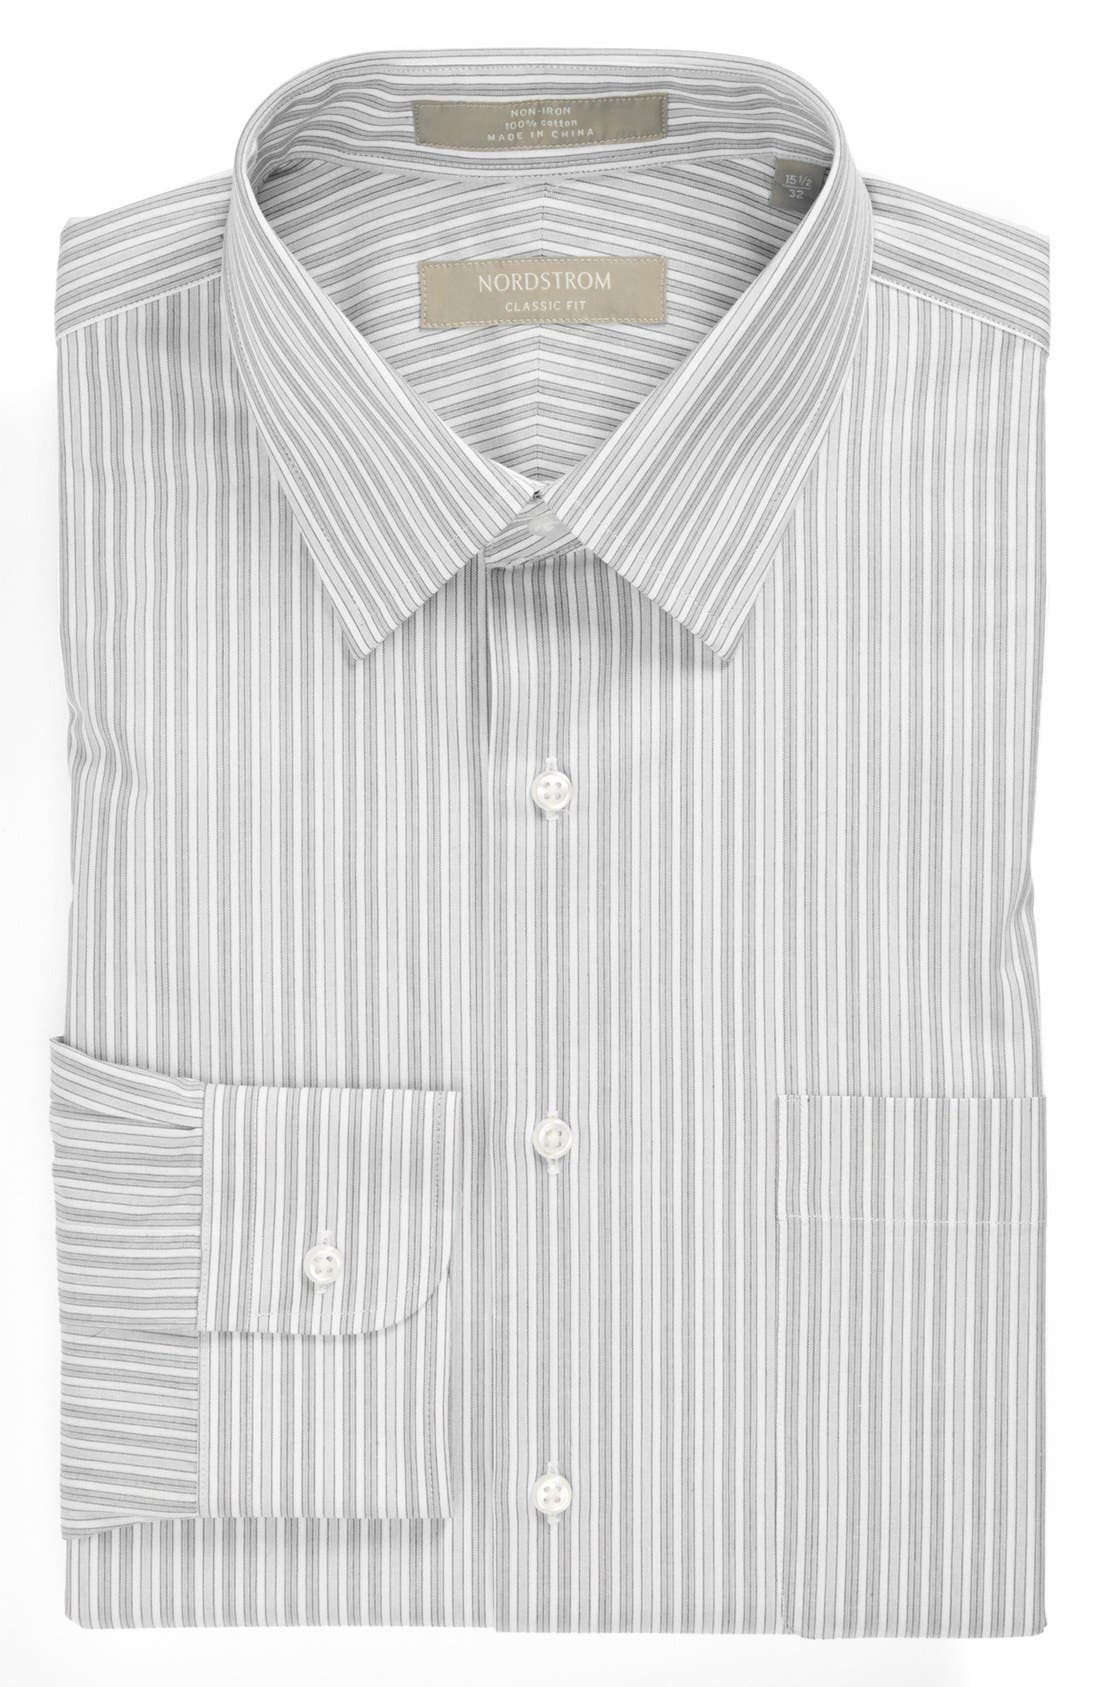 Nordstrom Classic Fit Non-Iron Dress Shirt,                             Main thumbnail 1, color,                             Grey- Horizon